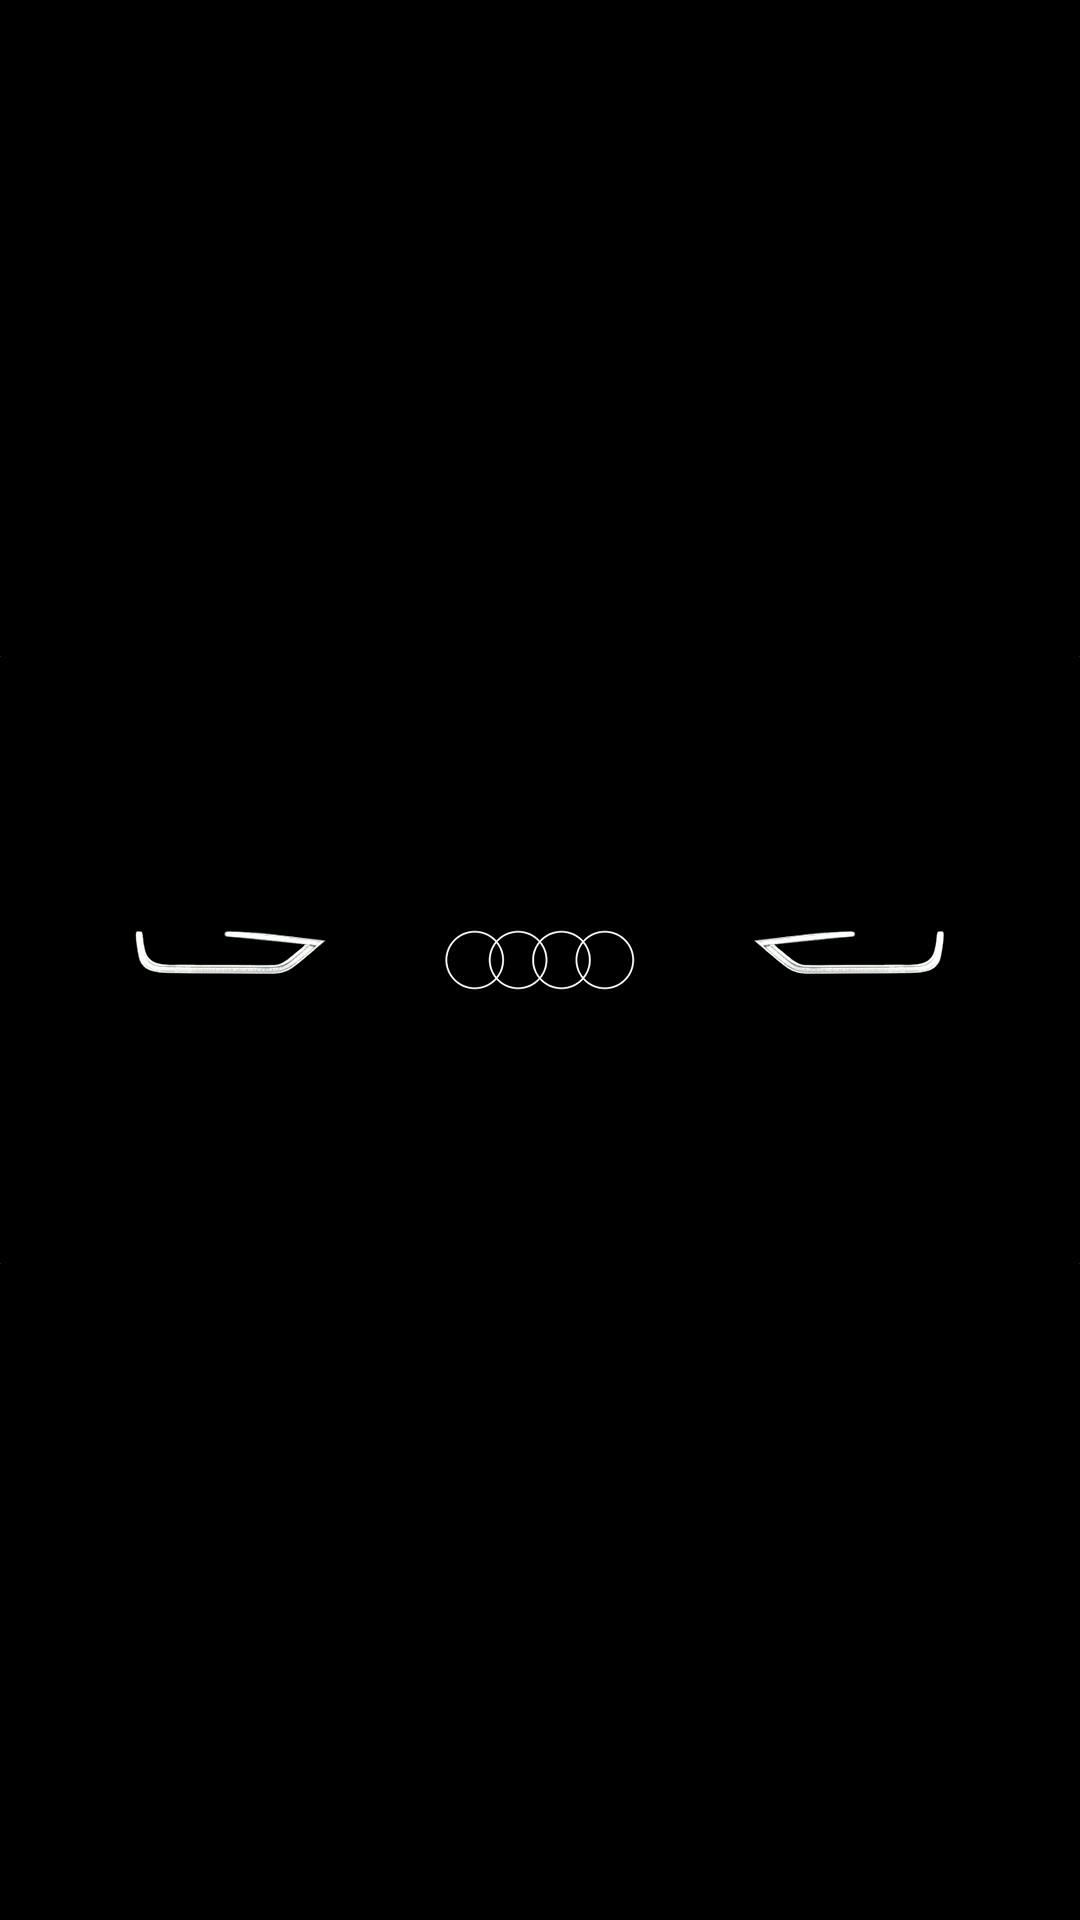 Pin by RAHUL on AUDI | Cars, Audi cars, Bmw wallpapers